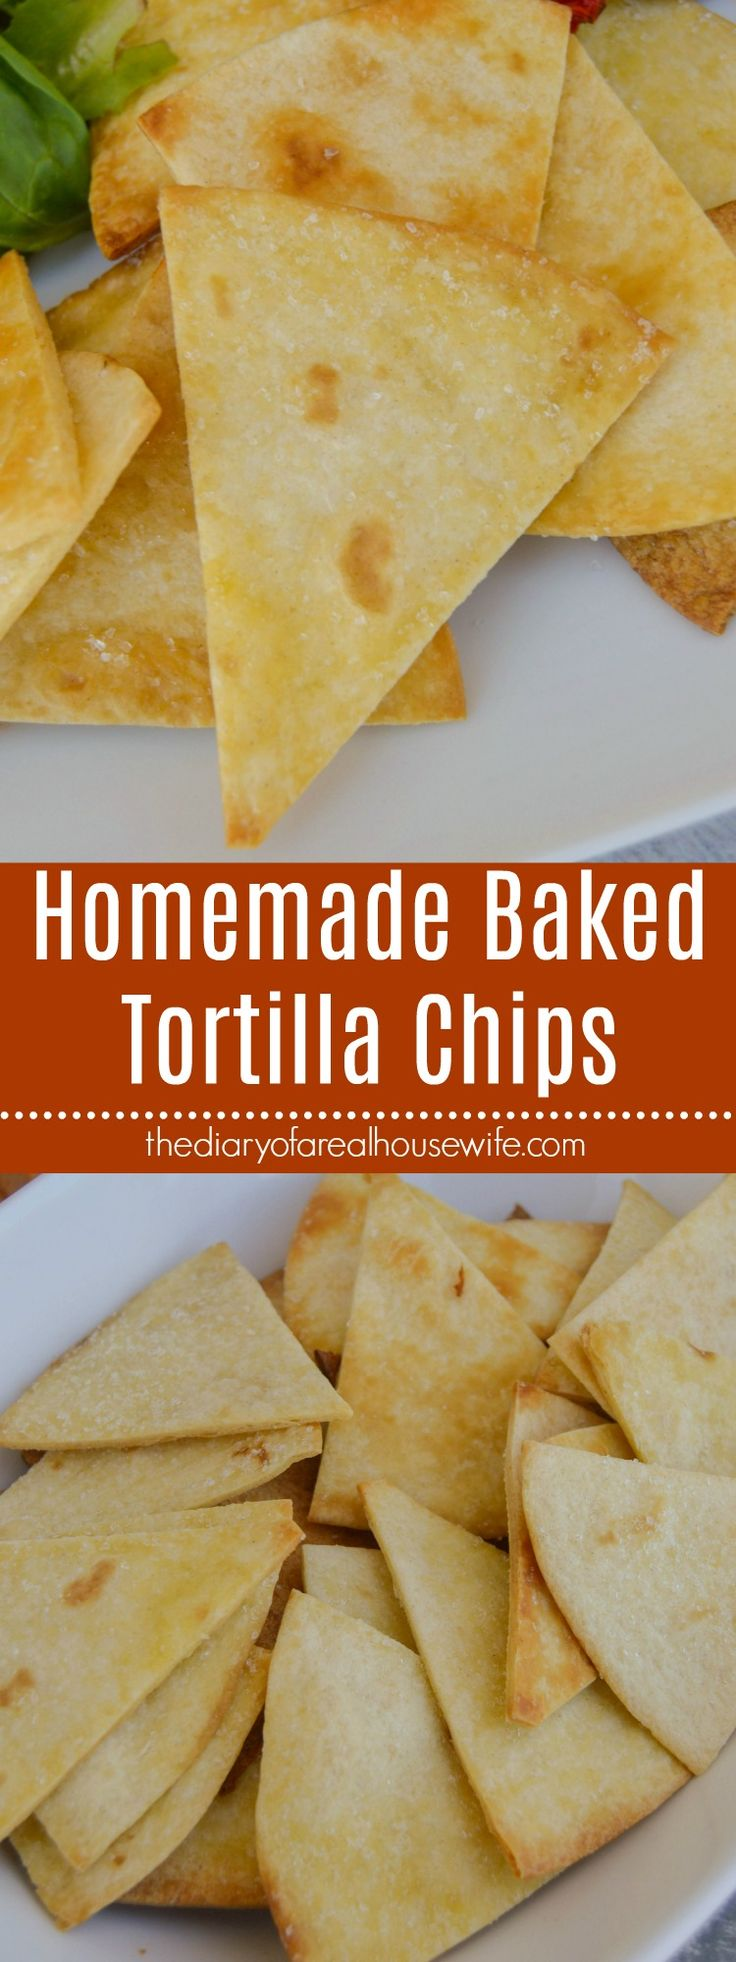 Homemade Baked Tortilla Chips baked perfectly crispy and salty and serve with a my favorite Frontera® bowl. https://www.thediaryofarealhousewife.com/homemade-baked-tortilla-chips/ #ExperienceFrontera [AD]